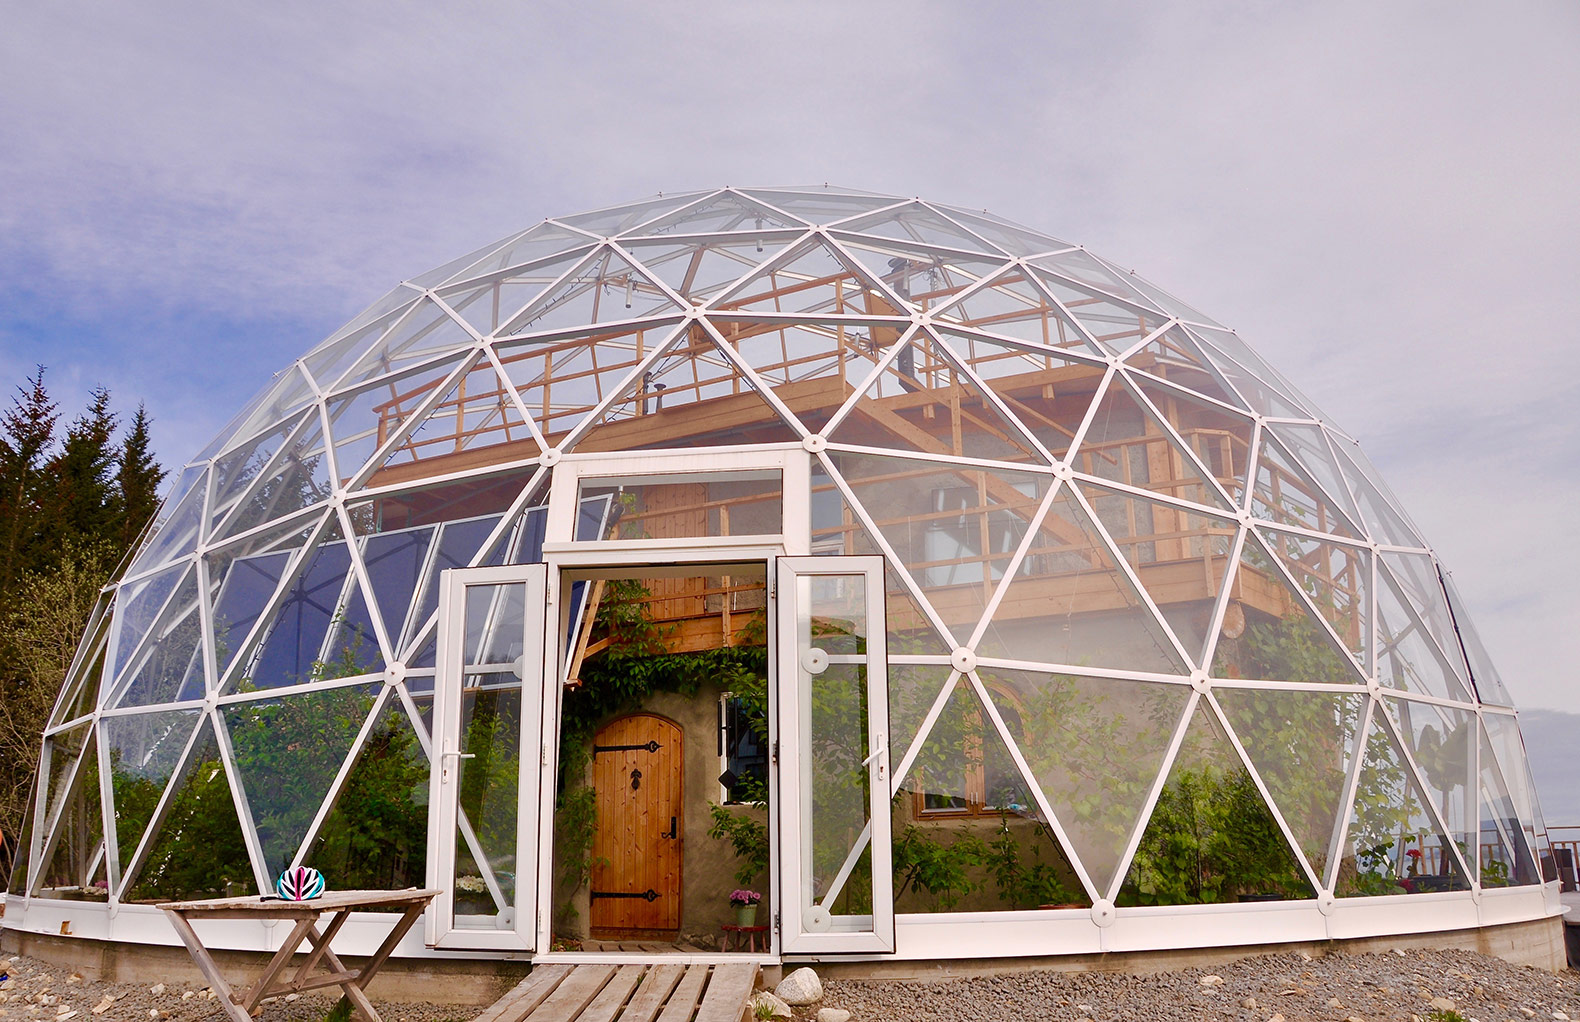 Inside a family's geodesic dome home in the Arctic Circle